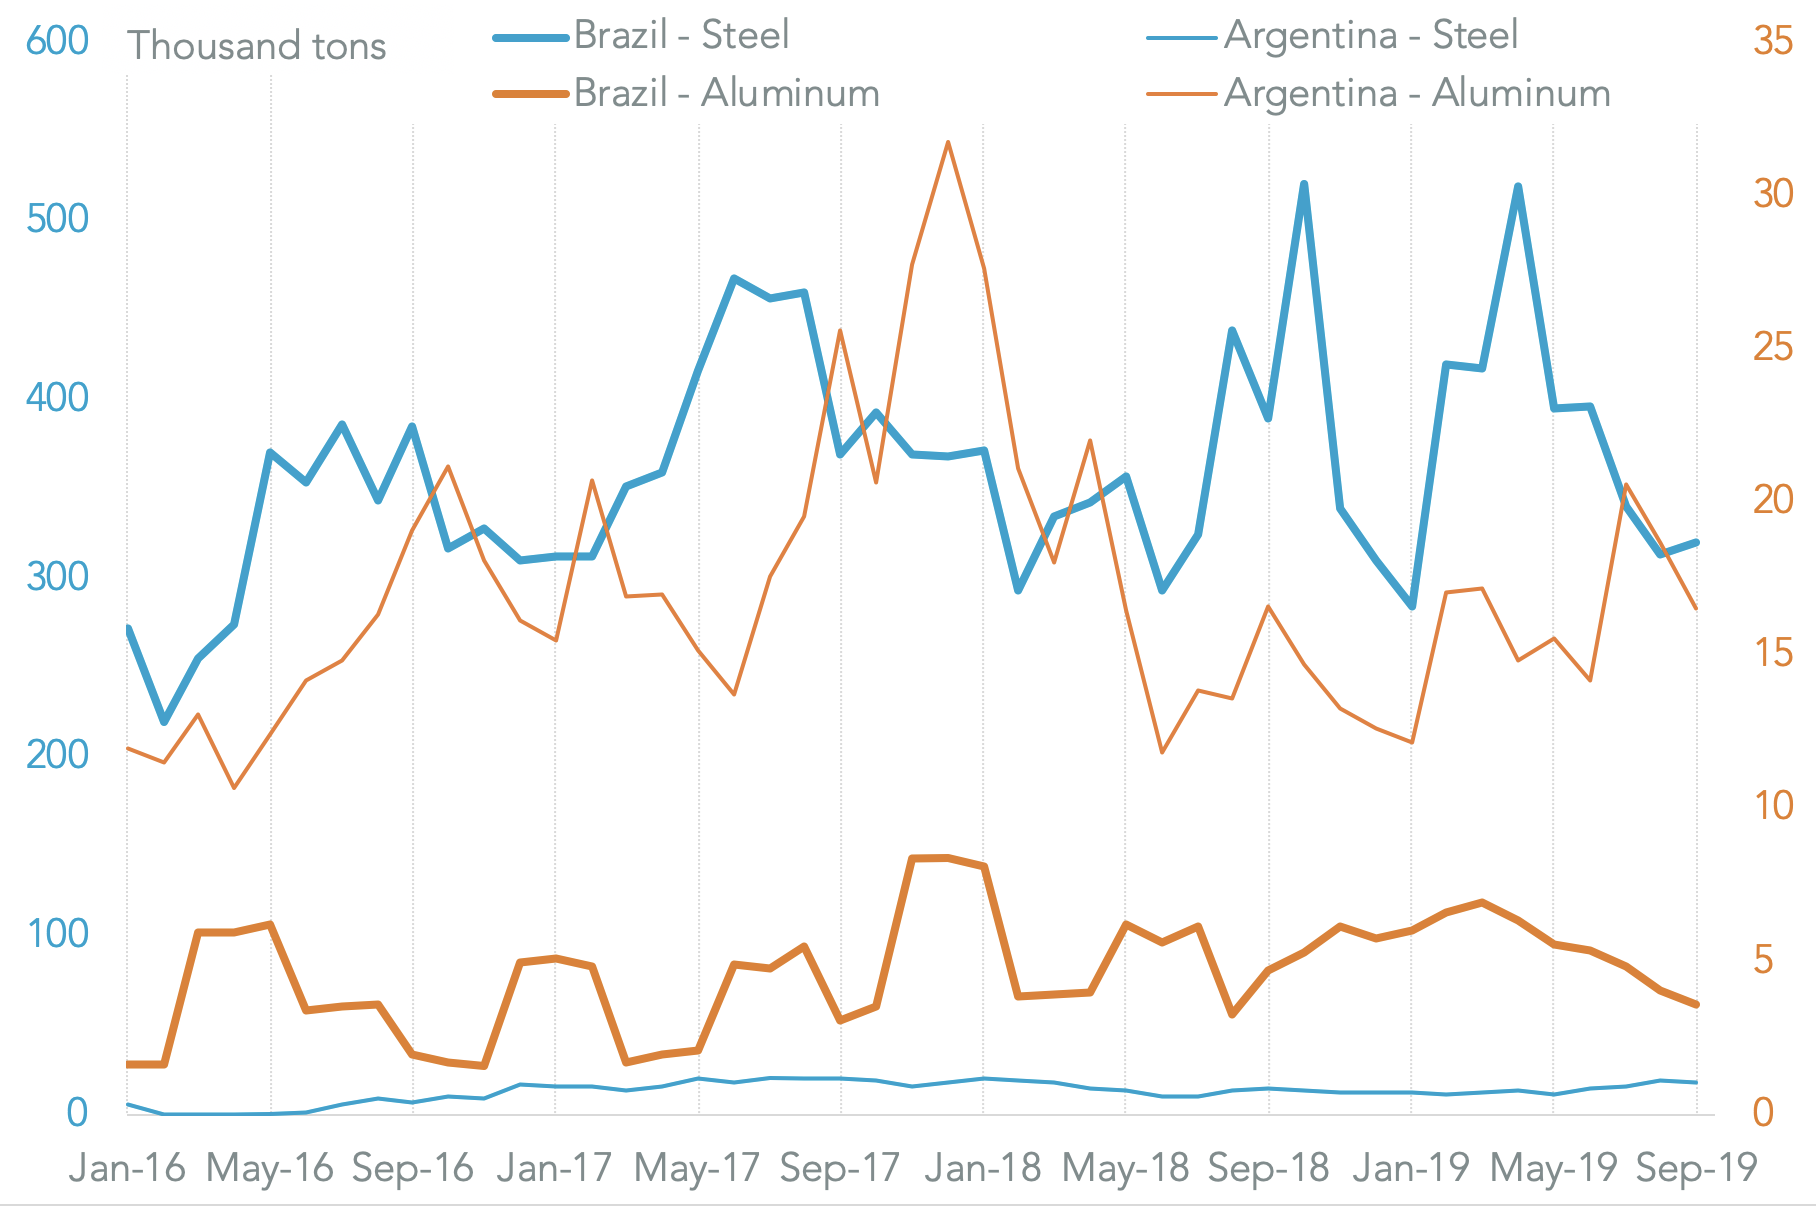 20191203-steel-alum-braz-arg-total